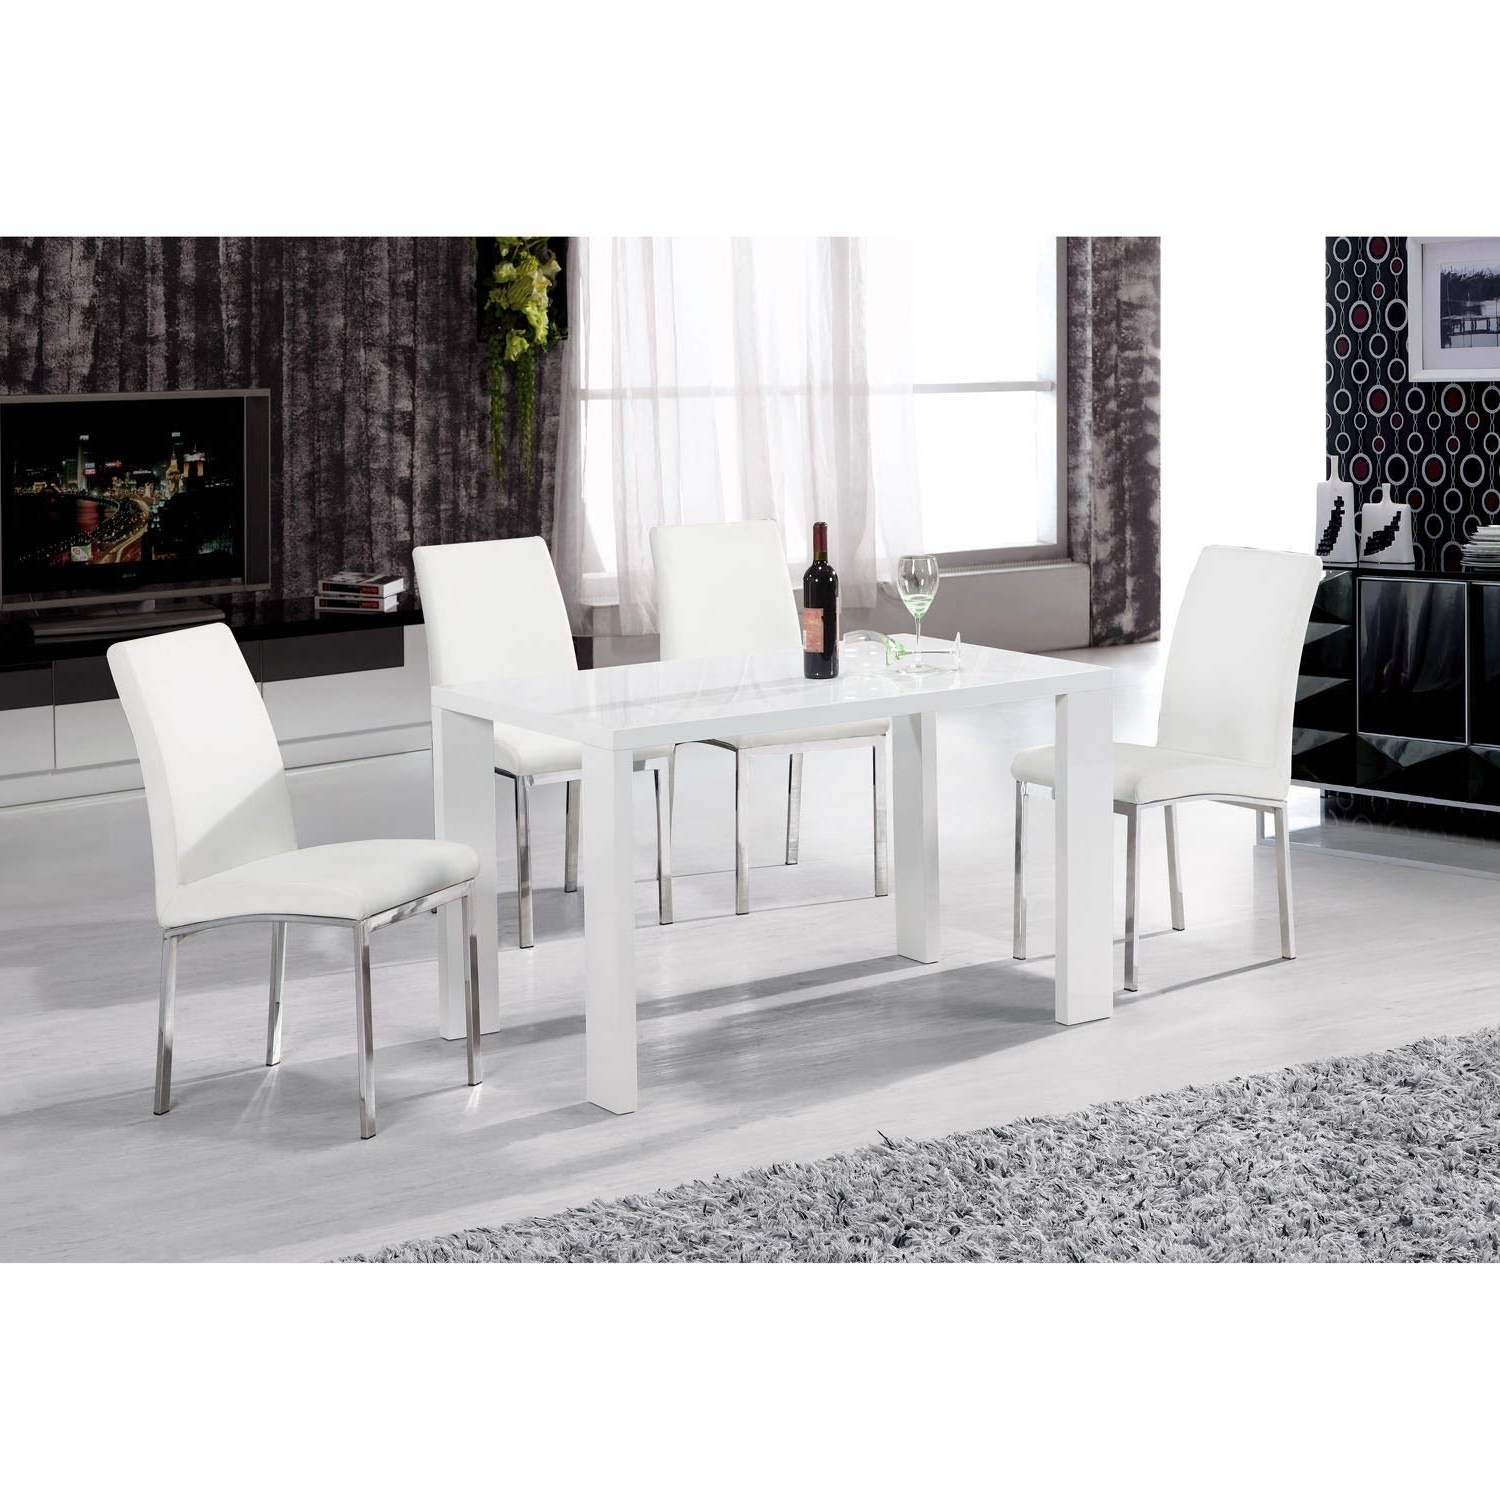 Heartlands Peru White High Gloss 130Cm Dining Table In Wood Within Popular High Gloss Dining Tables And Chairs (View 20 of 25)